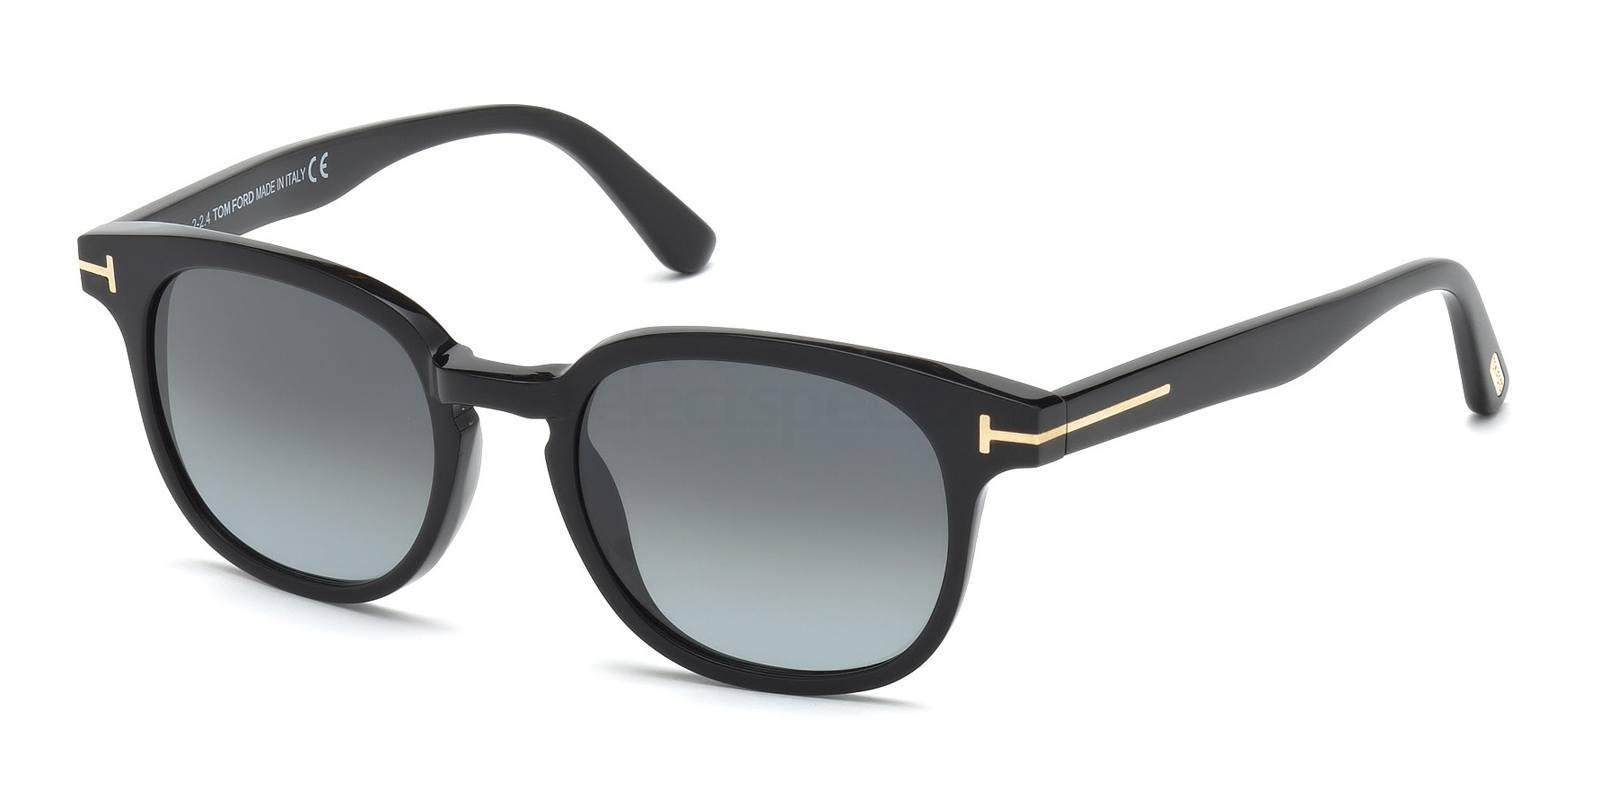 01N FT0399 Sunglasses, Tom Ford